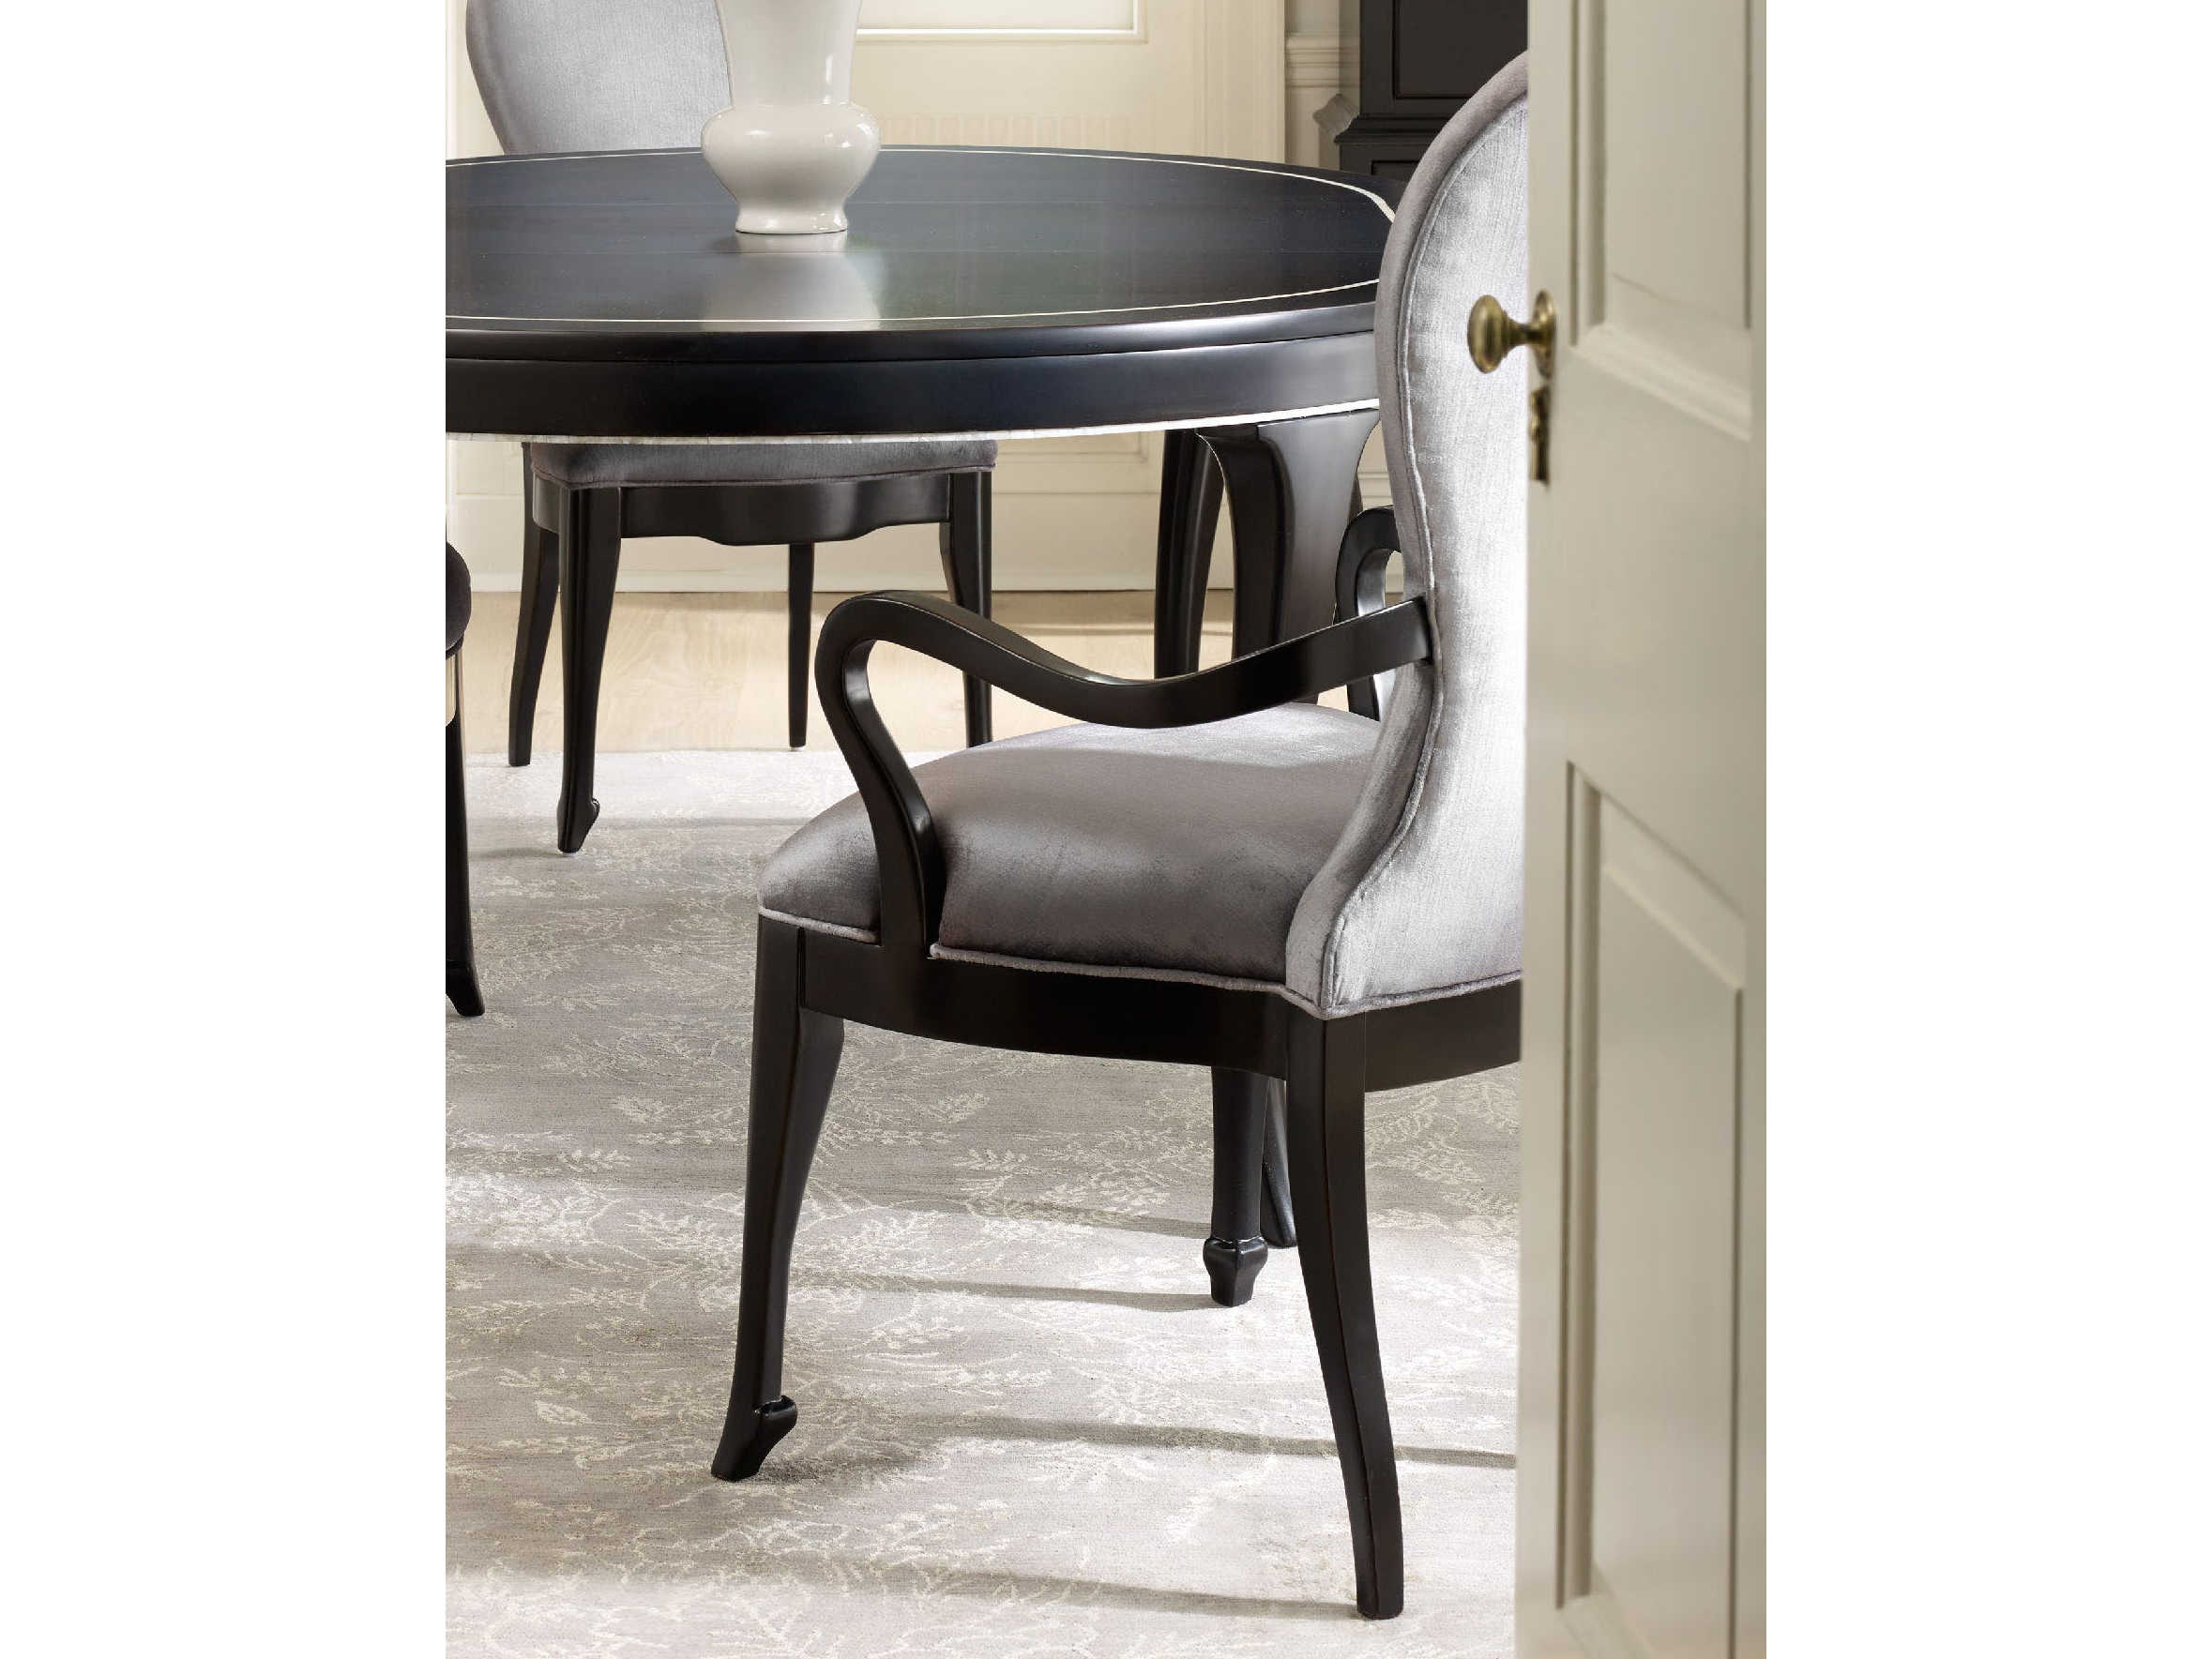 Furniture Cynthia Rowley Phantom With Black Dining Arm Chair Sold In 2